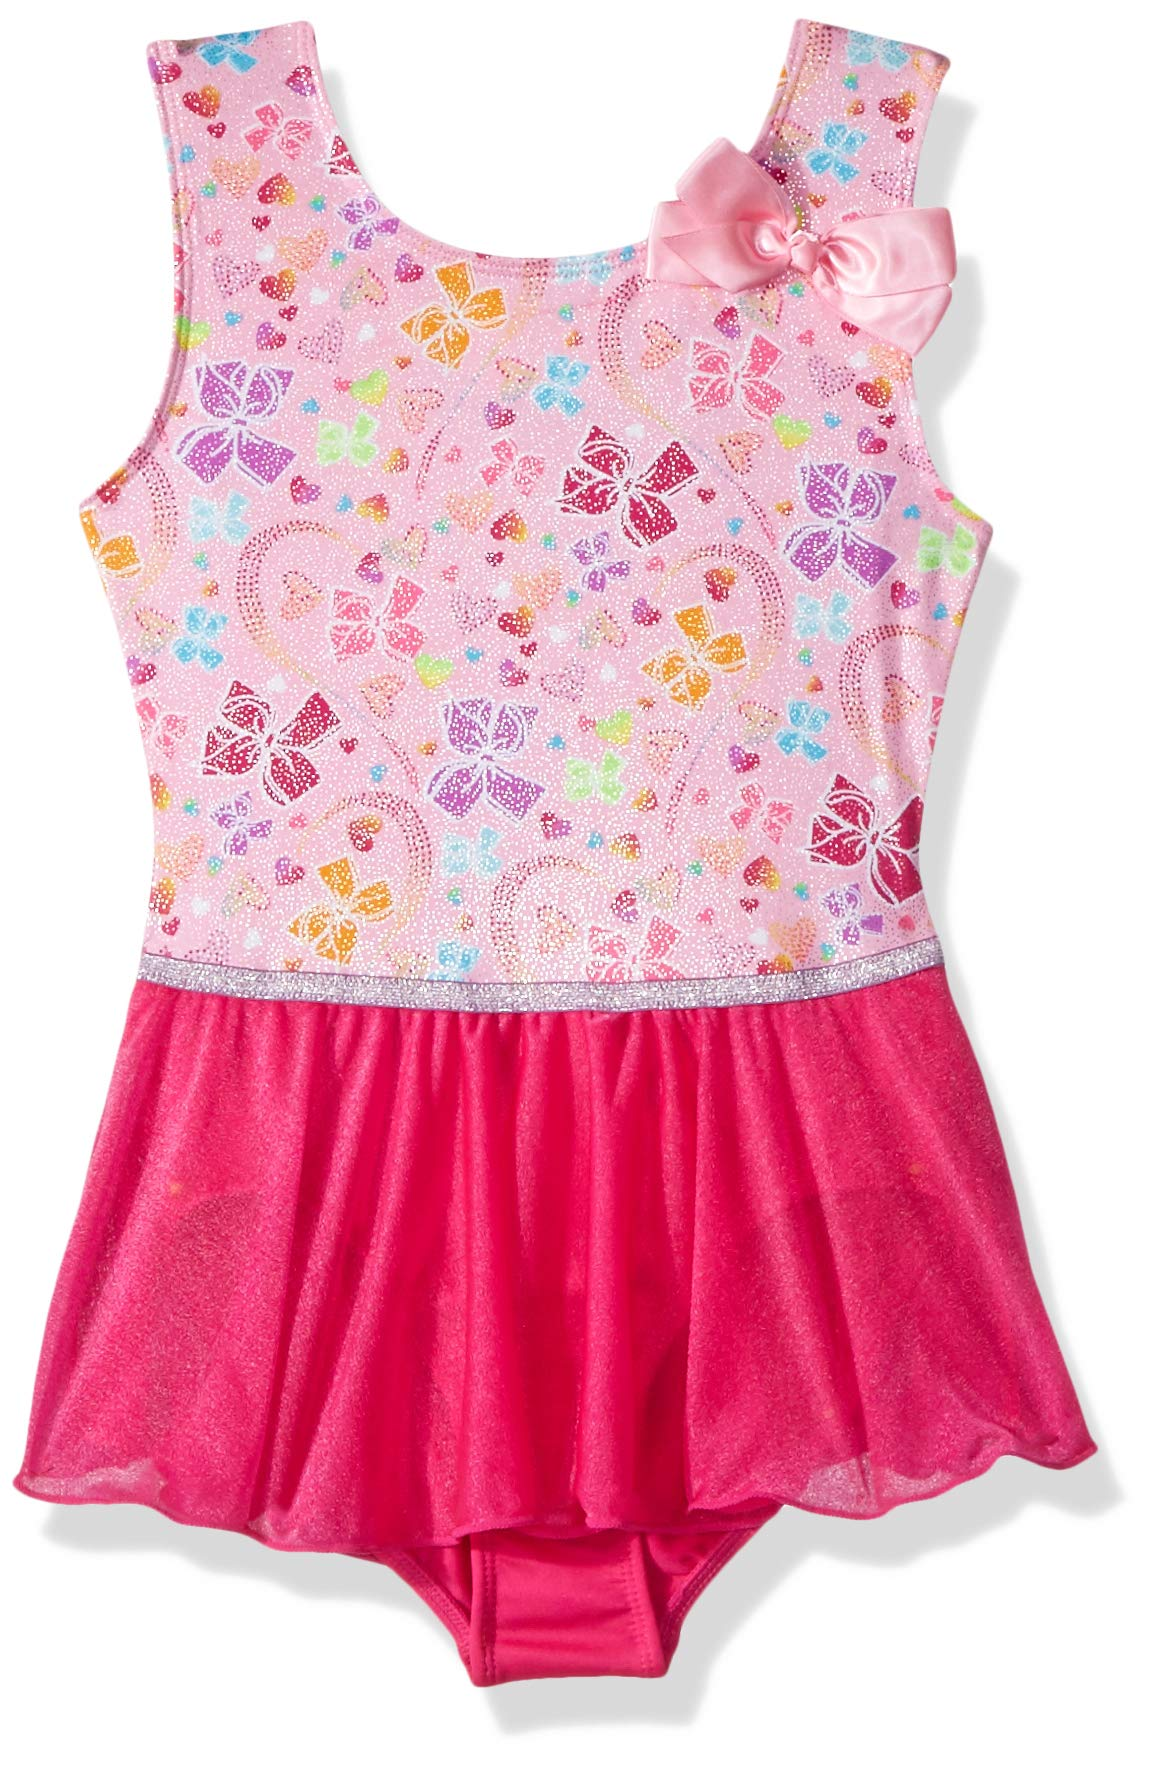 Nickelodeon Girls' Big Rainbow Bows Tank Dance Dress, Sugar Pink Pretty, Small by Nickelodeon (Image #1)